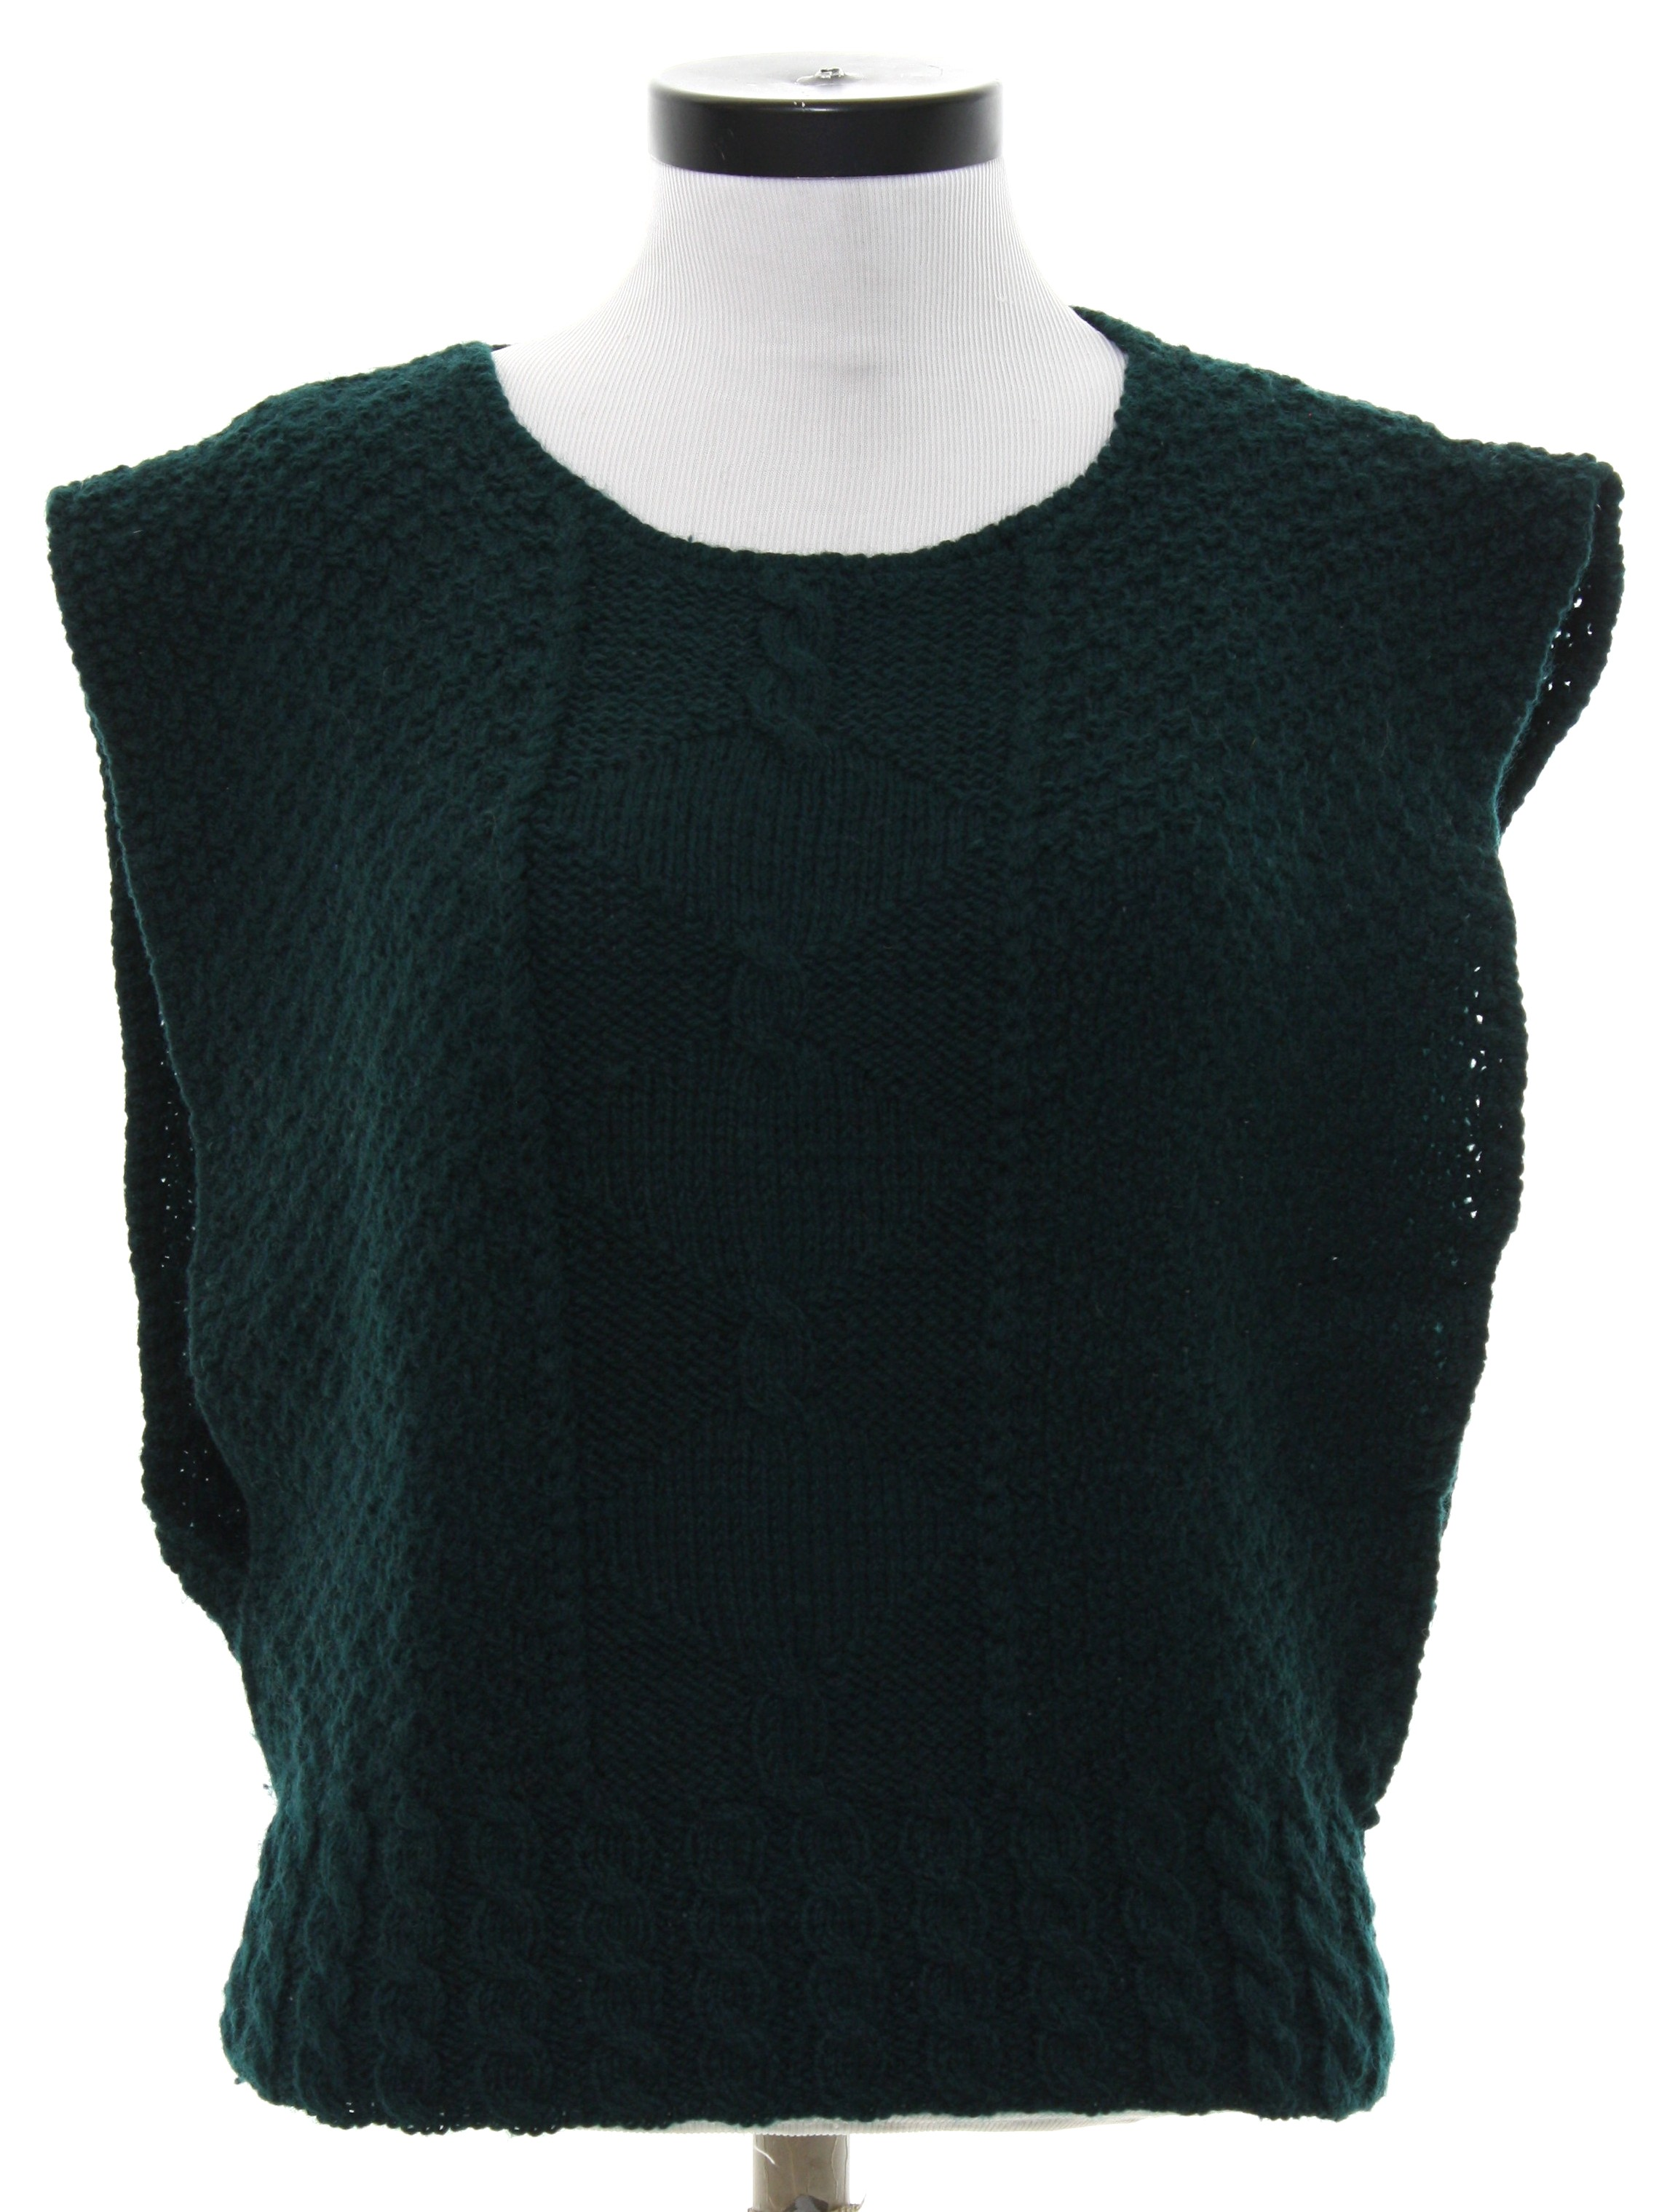 Knit Vest Pattern In The Round : 1980s Vintage Meadowbank Sweater: 80s -Meadowbank-- Womens dark green ch...